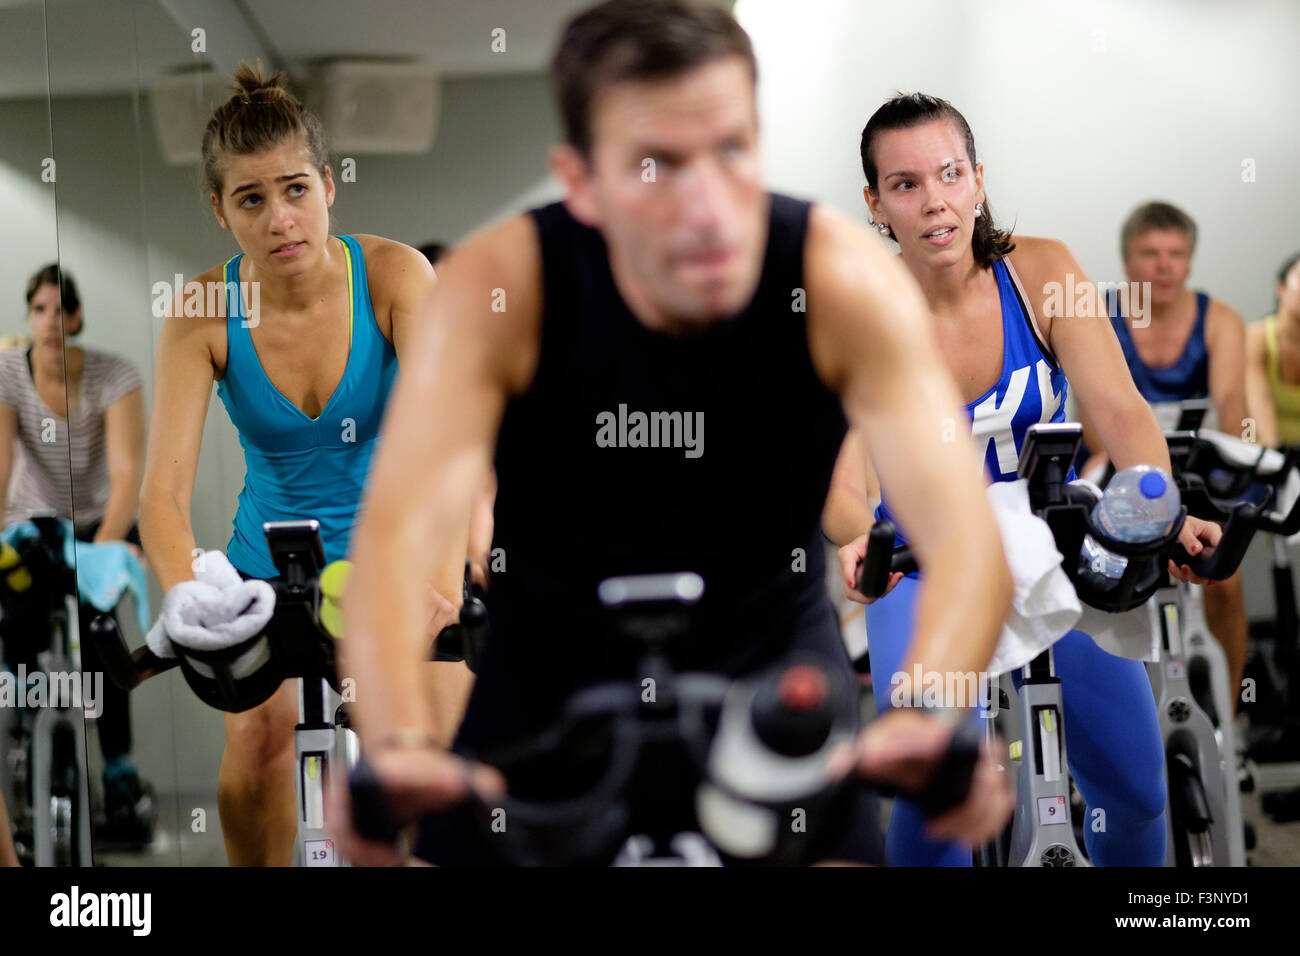 Young women riding stationary bicycle during a spinning class at the gym - Stock Image